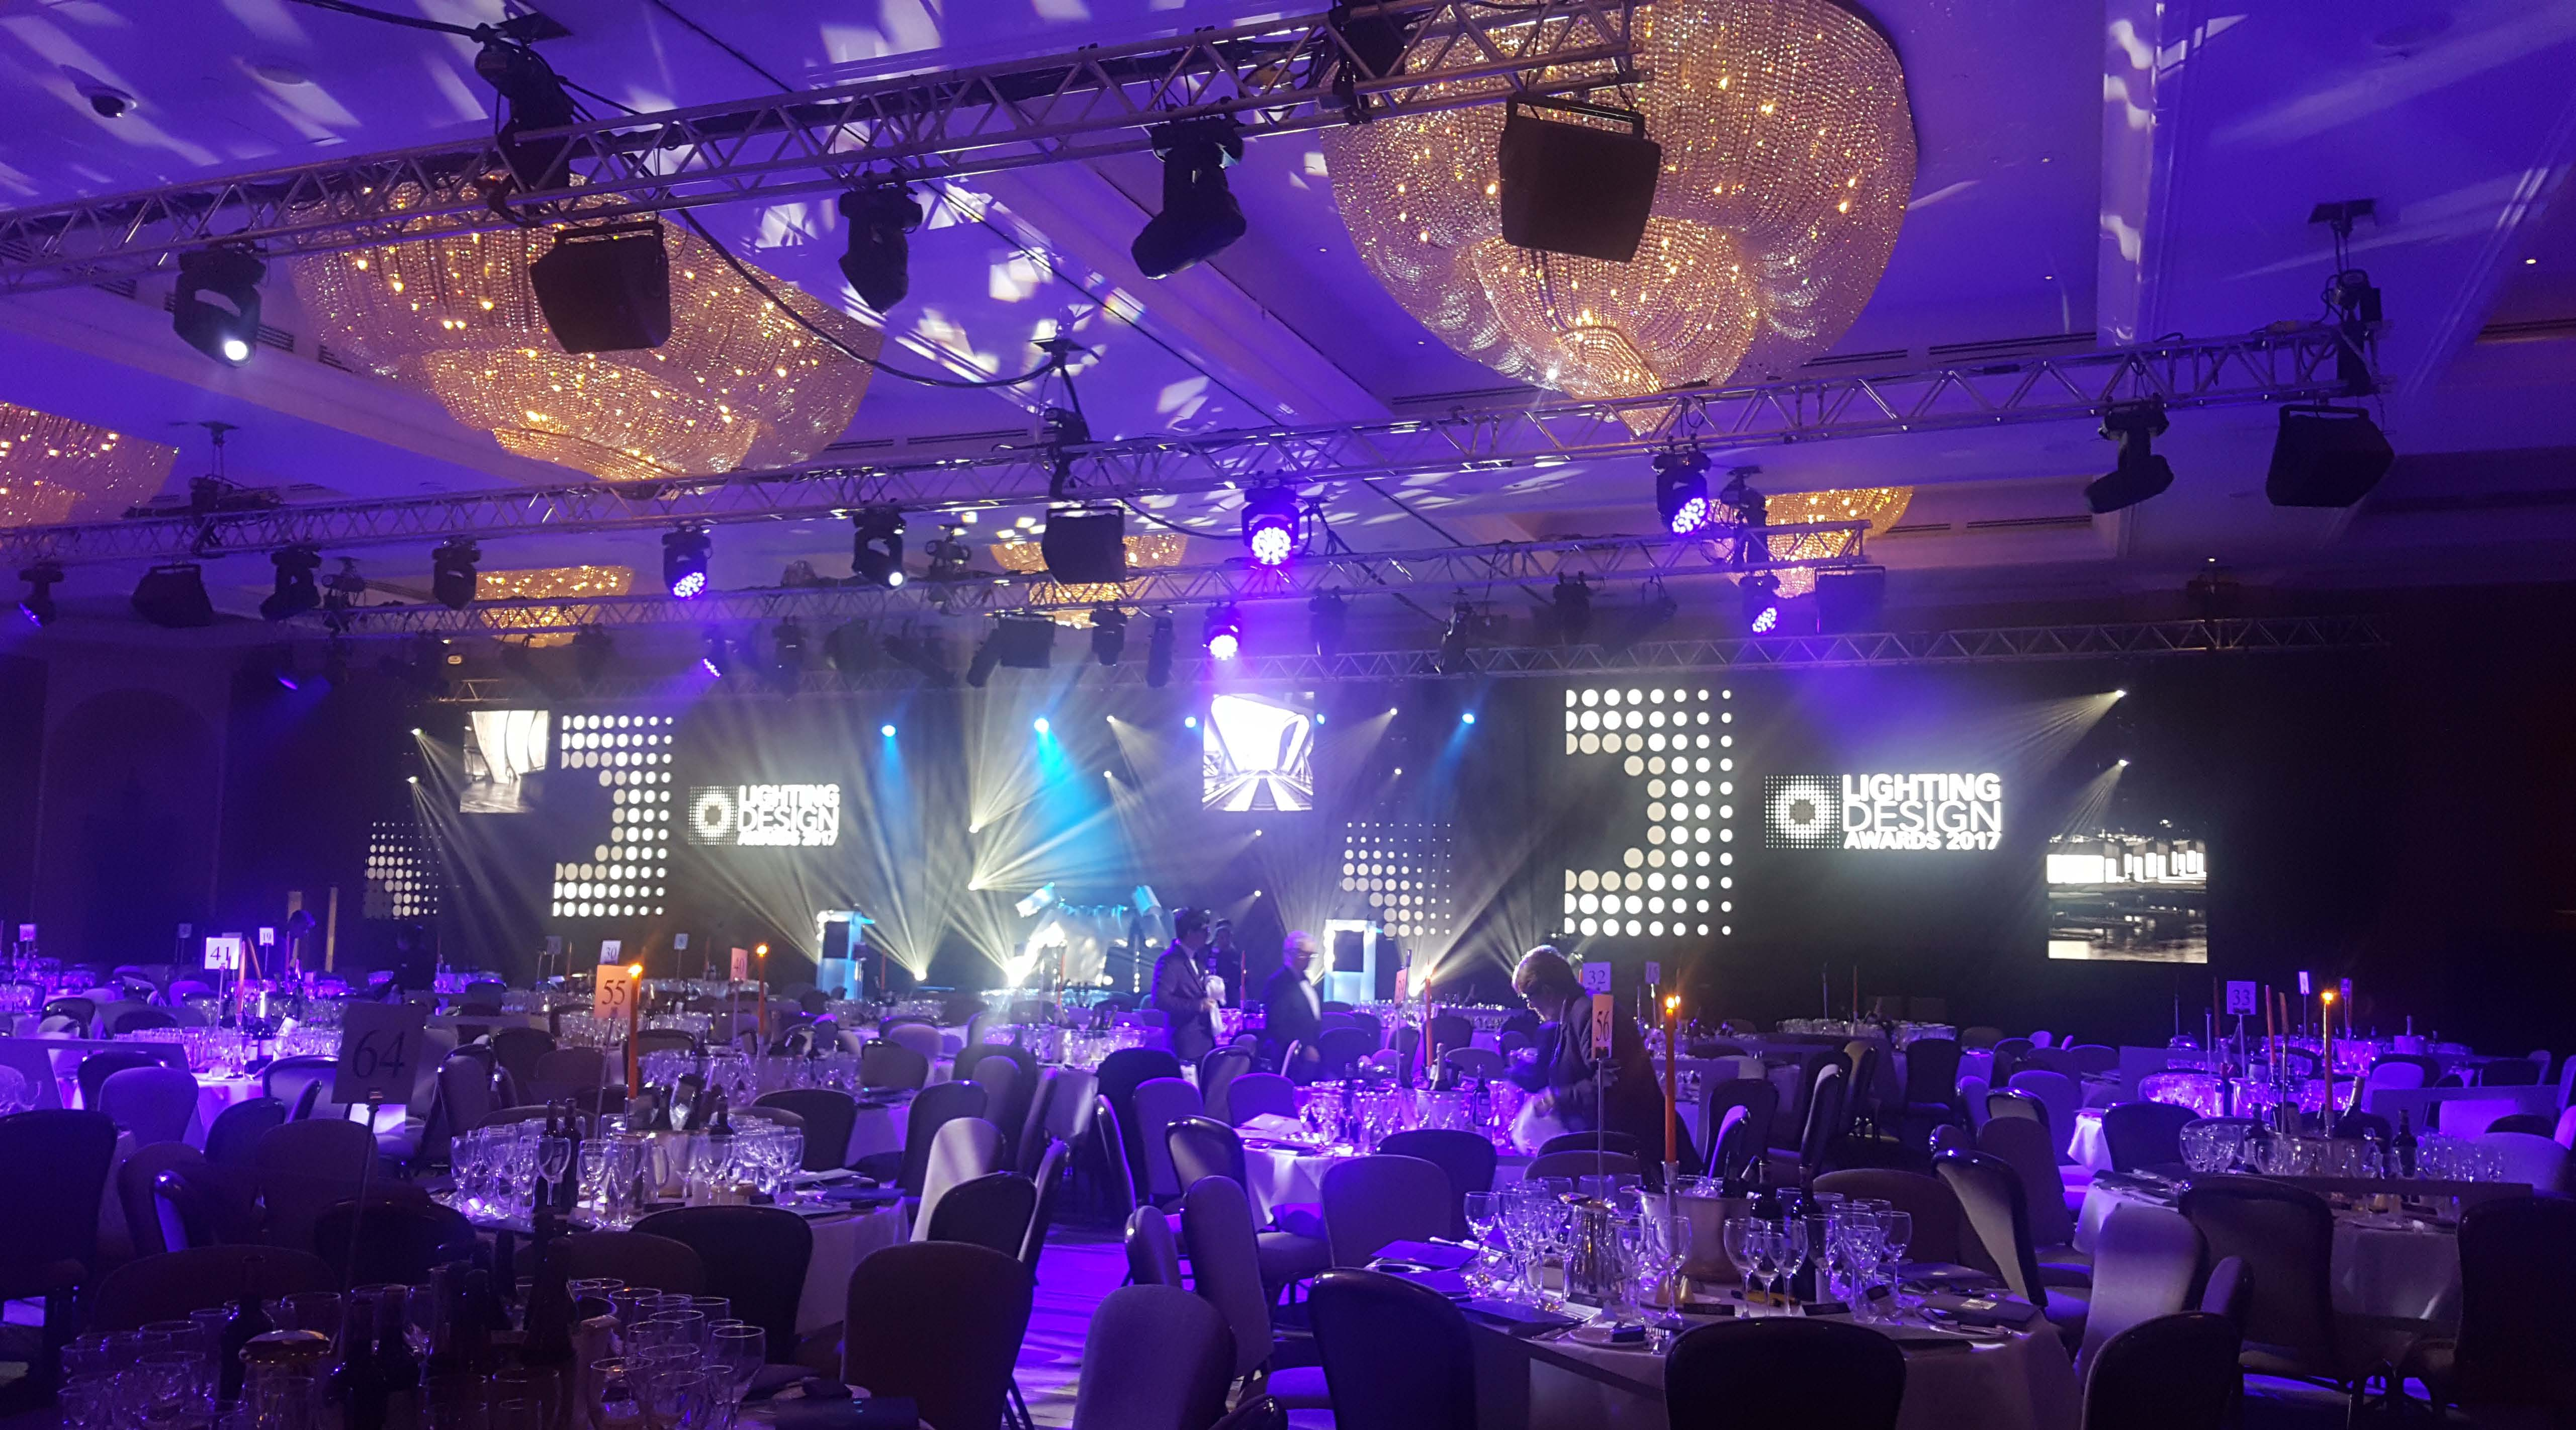 Lighting design awards hilton park lane london stagecraftuk